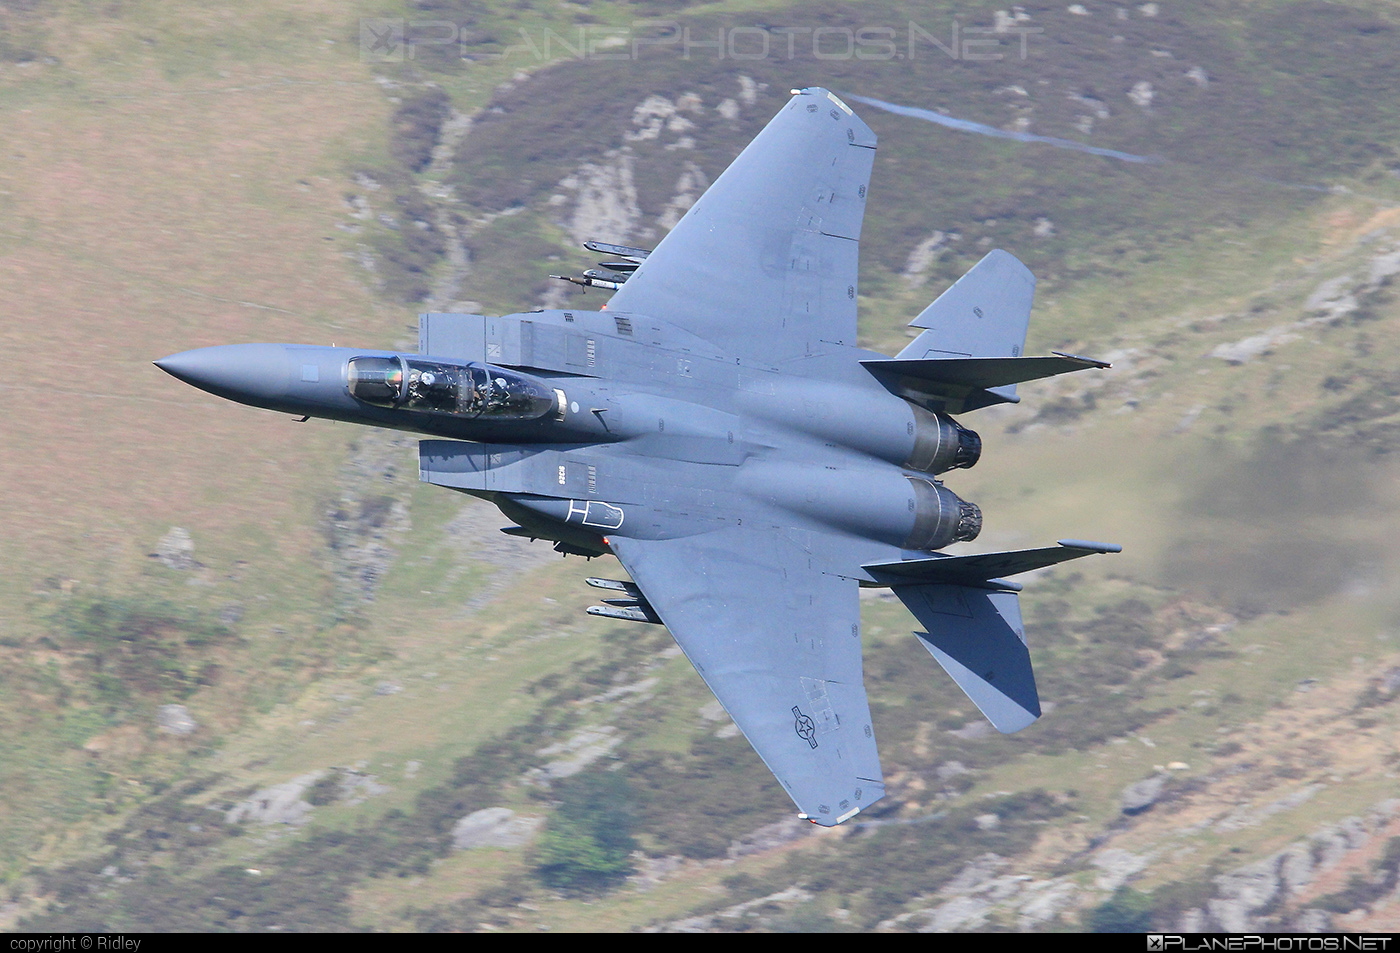 McDonnell Douglas F-15E Strike Eagle - 91-0326 operated by US Air Force (USAF) #mcdonnelldouglas #usaf #usairforce